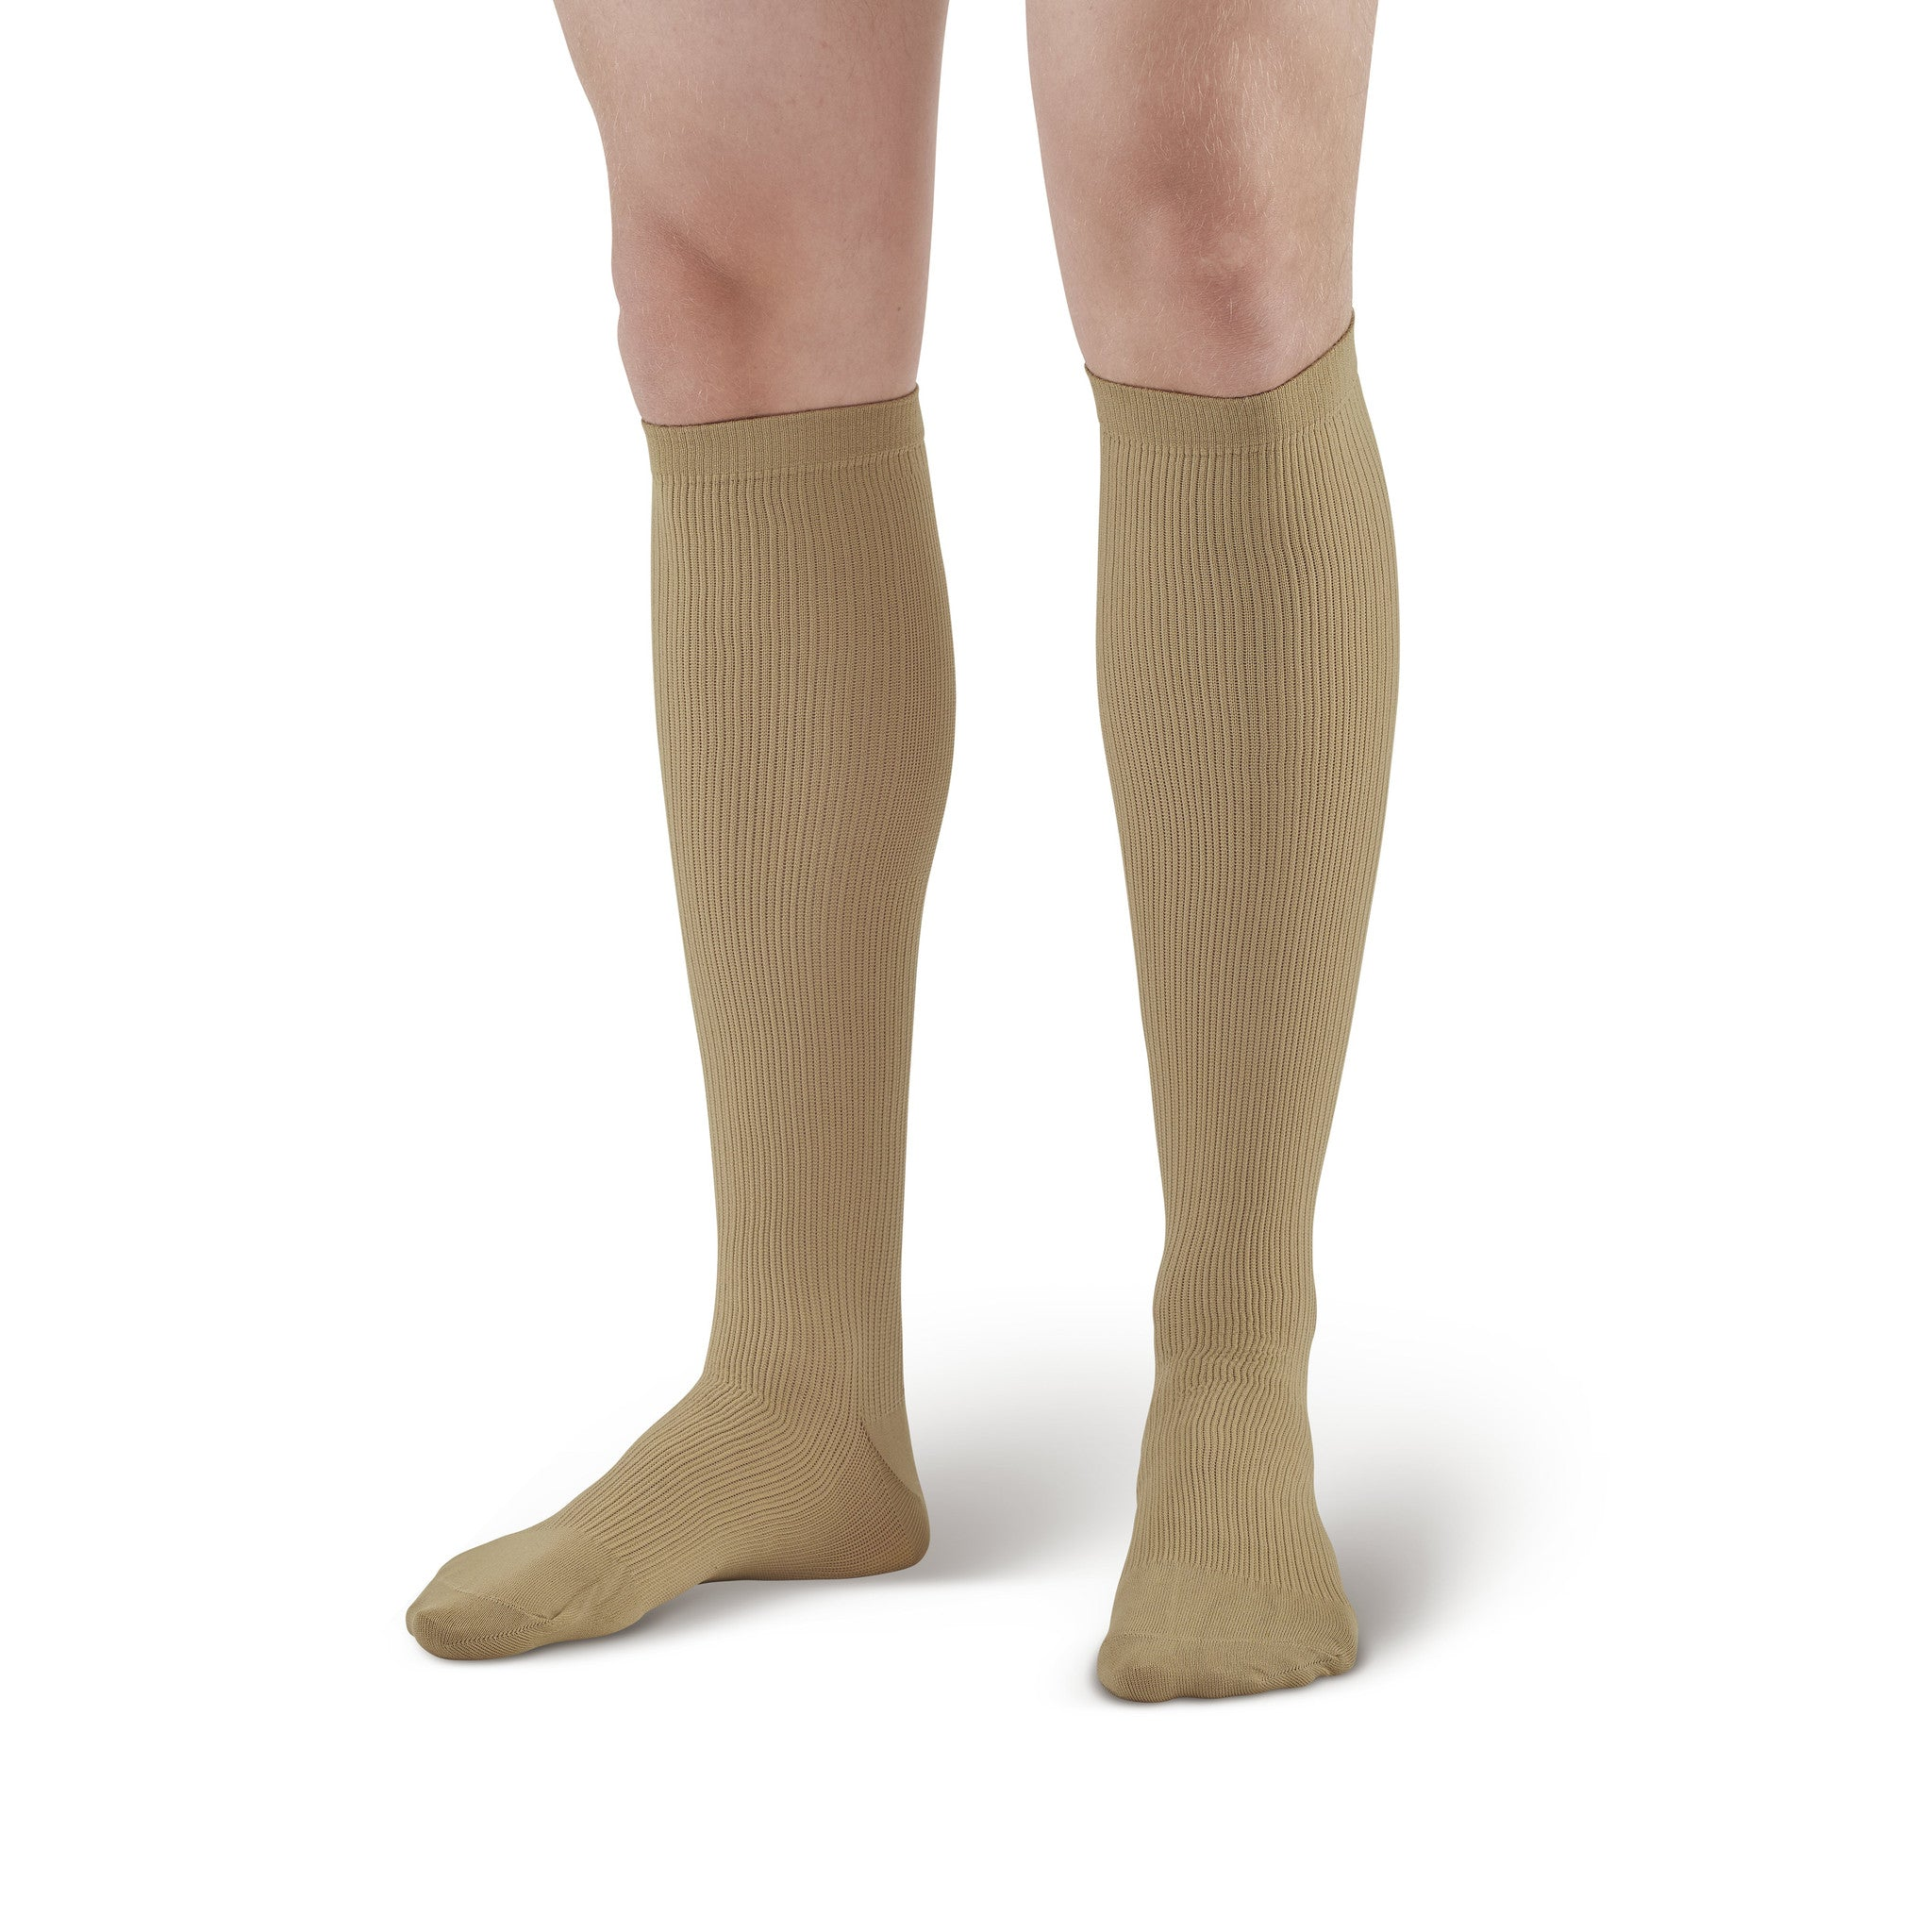 99a42a4362 Ames Walker Knee High Compression Socks 20-30 mmHg | Low Price Guarantee